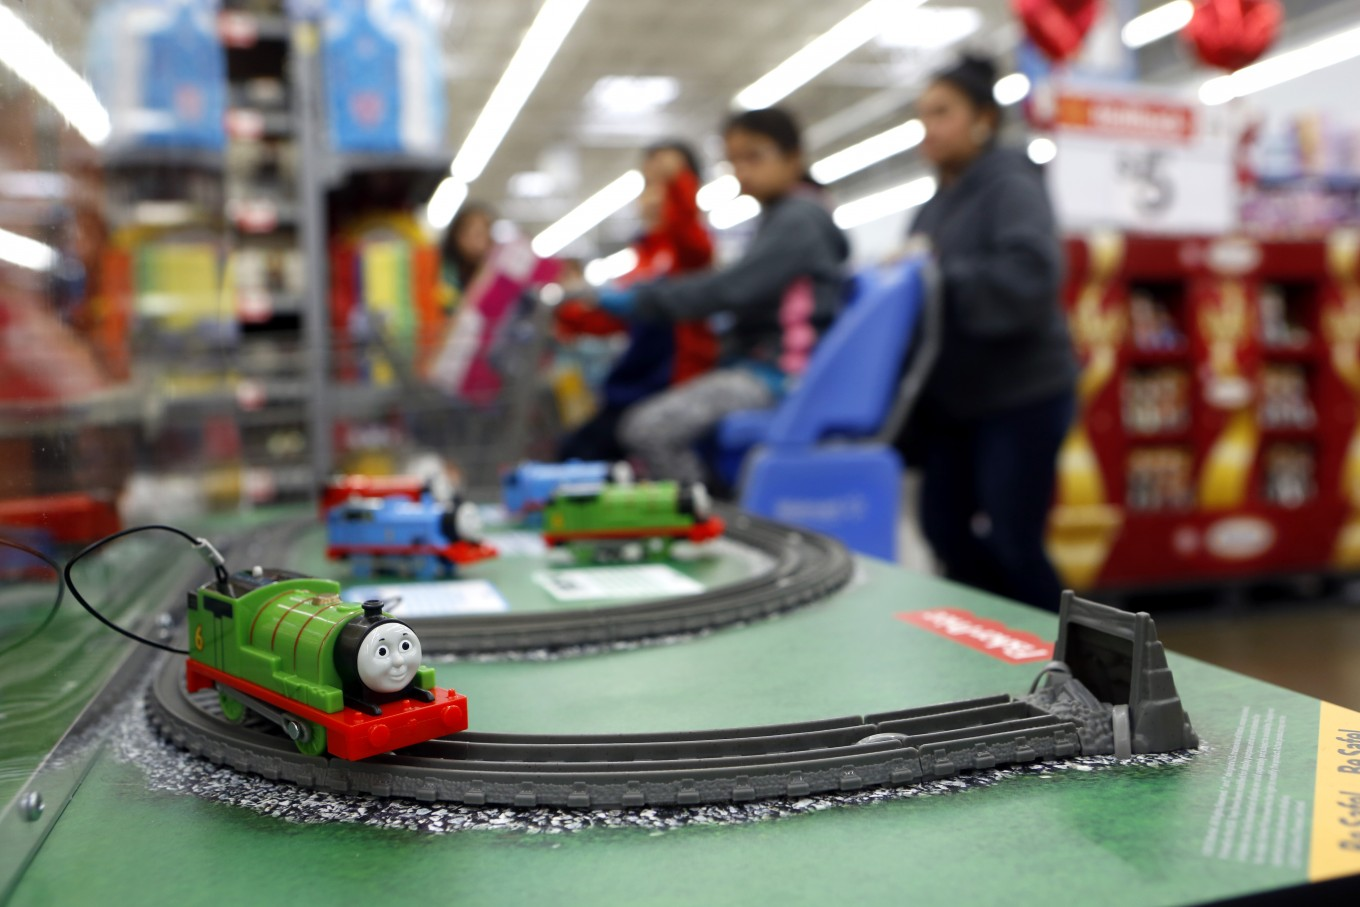 Thomas and Friends Trackmaster Motorized Railway display at Walmart in Dallas.  Photo/Lara Solt